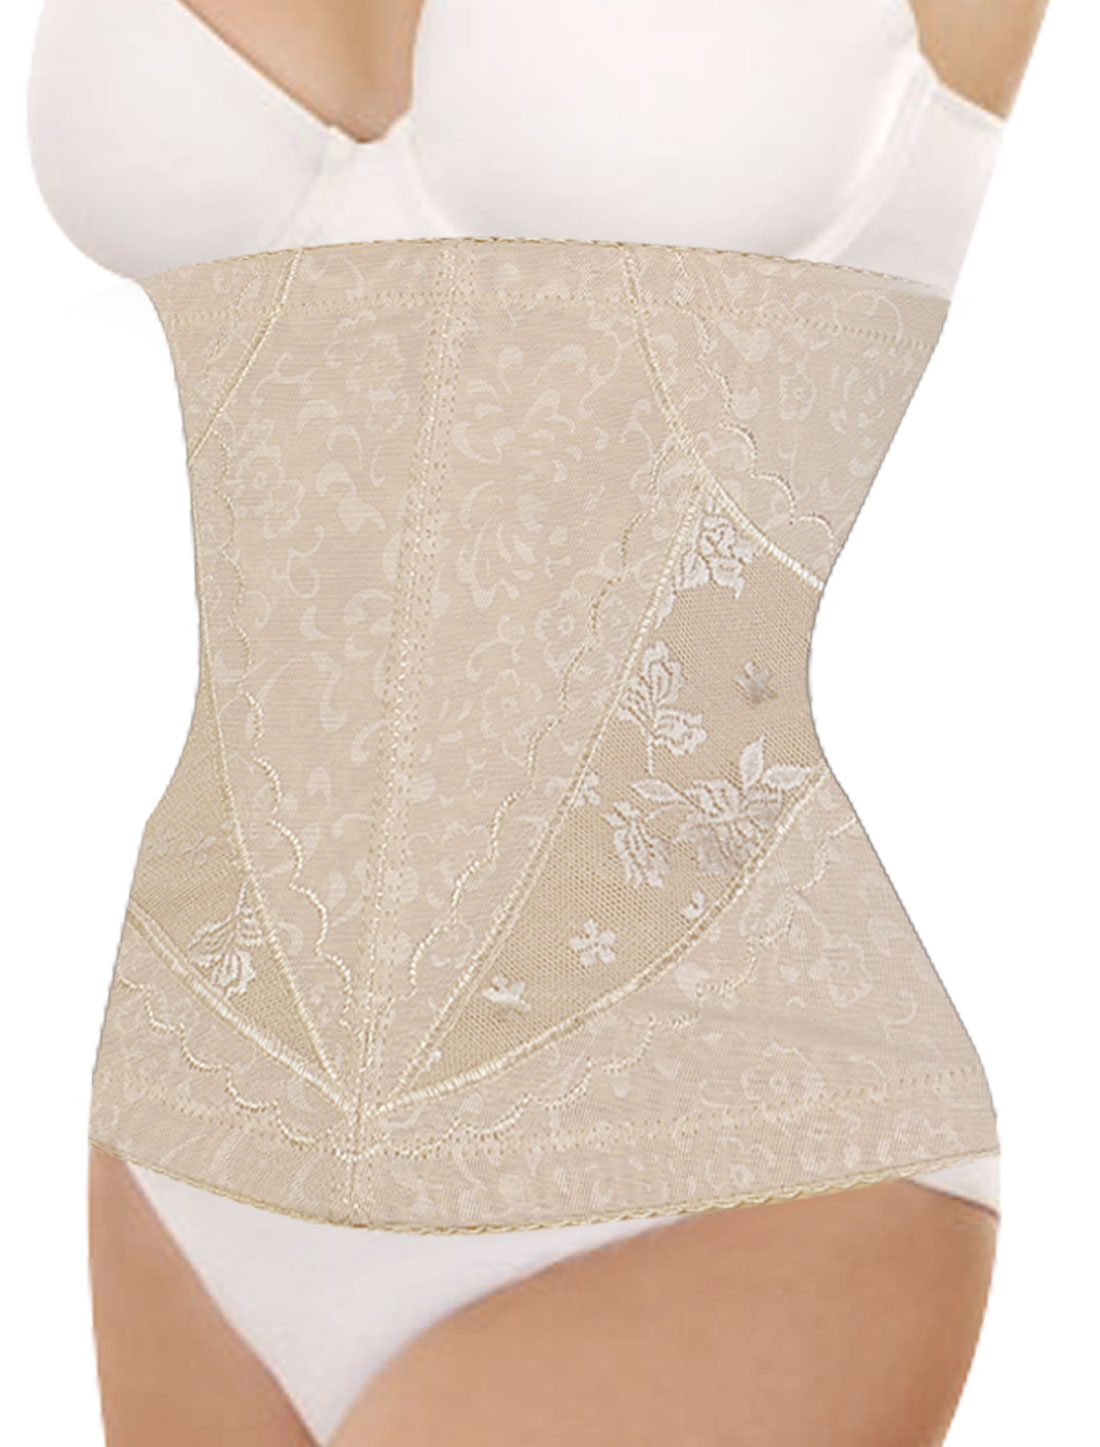 Women Floral Pattern Elastic Shapewear Slimming Belt Waist Cincher Flesh Color S